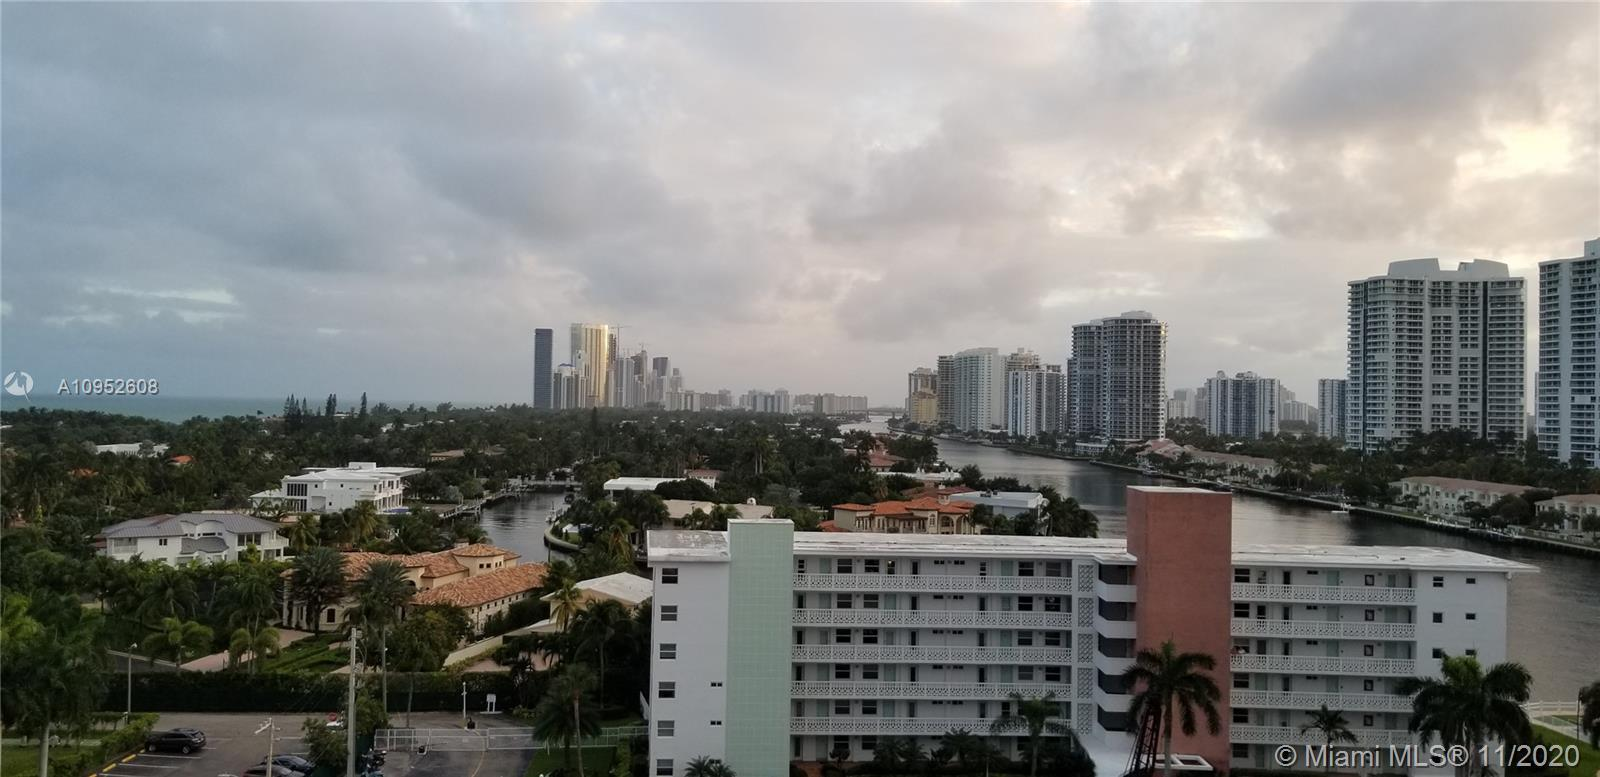 Large 2/2 condo with beautiful  water, ocean and city views from balcony and every window. Centrally